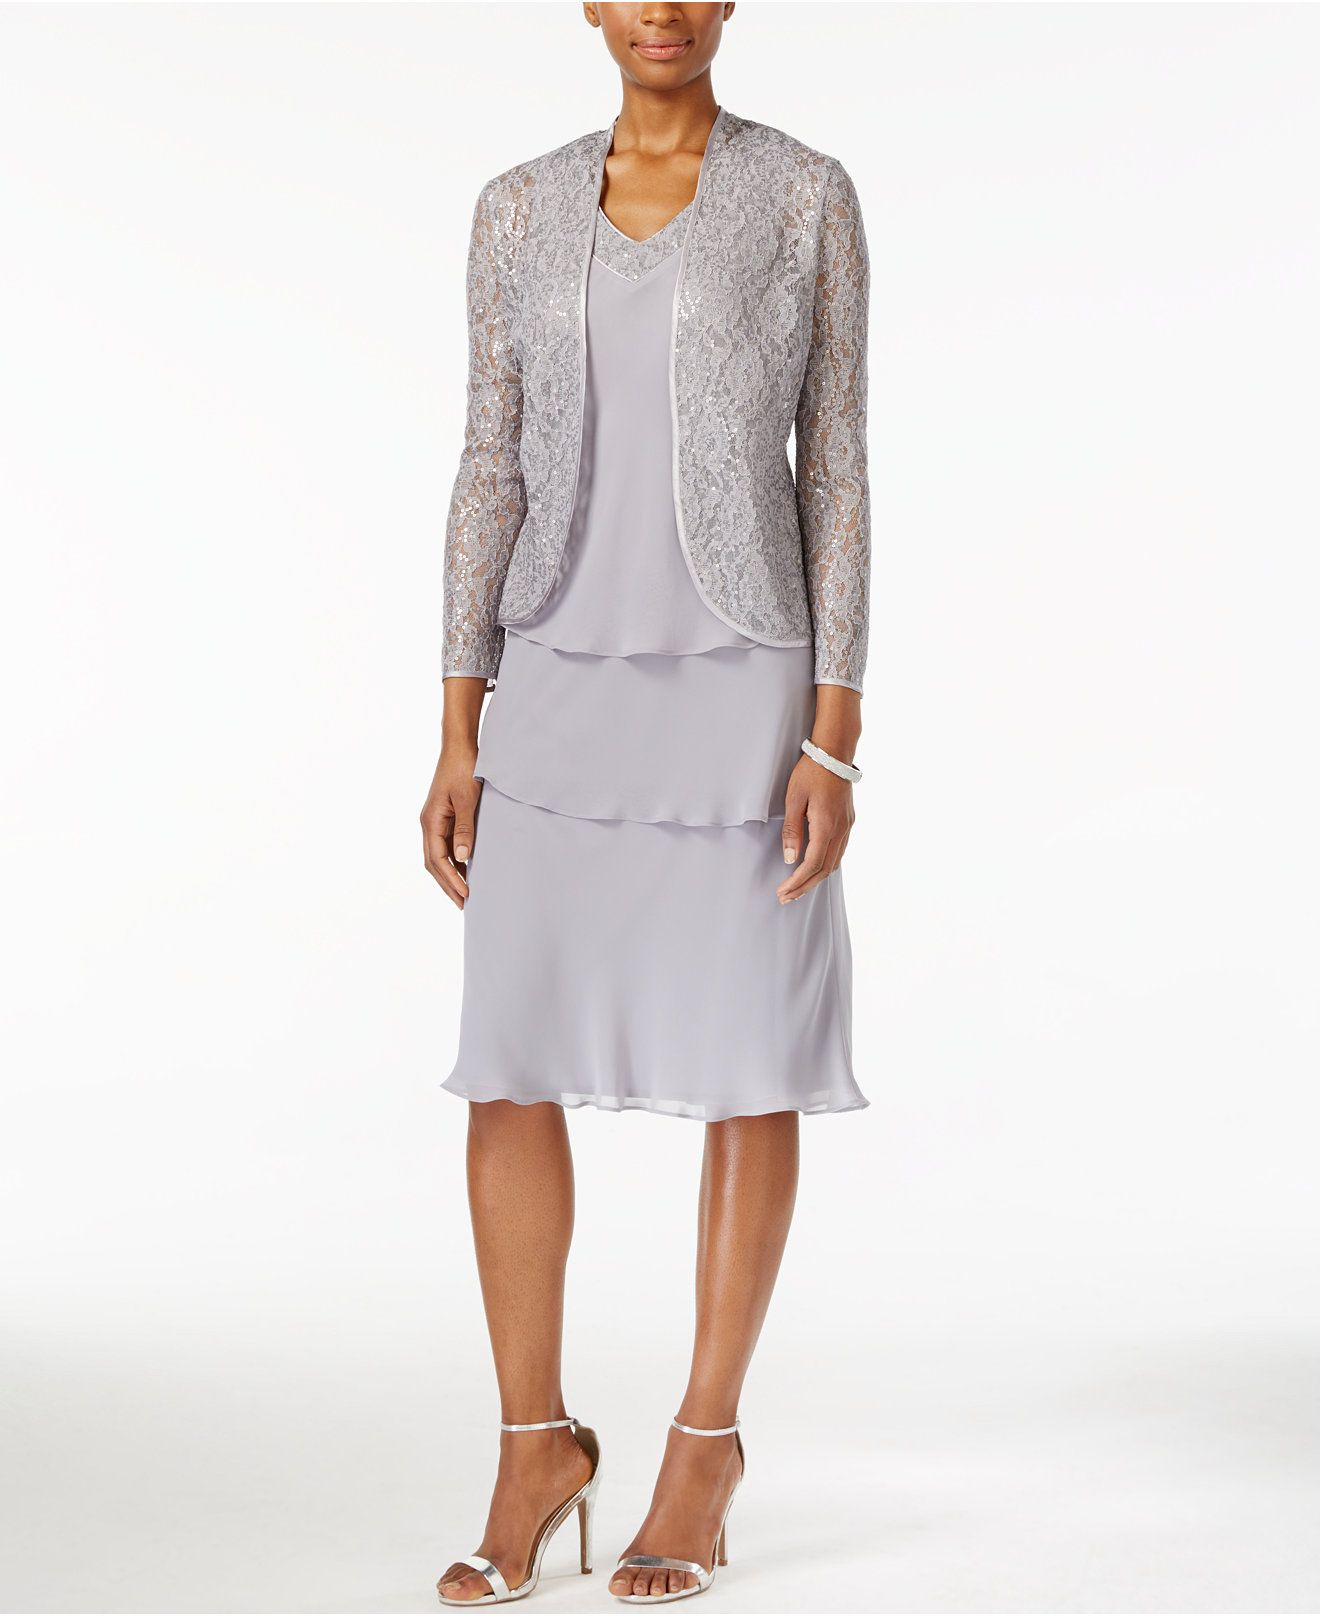 SL Fashions Tiered Dress and Lace Jacket - Dresses - Women - Macy's